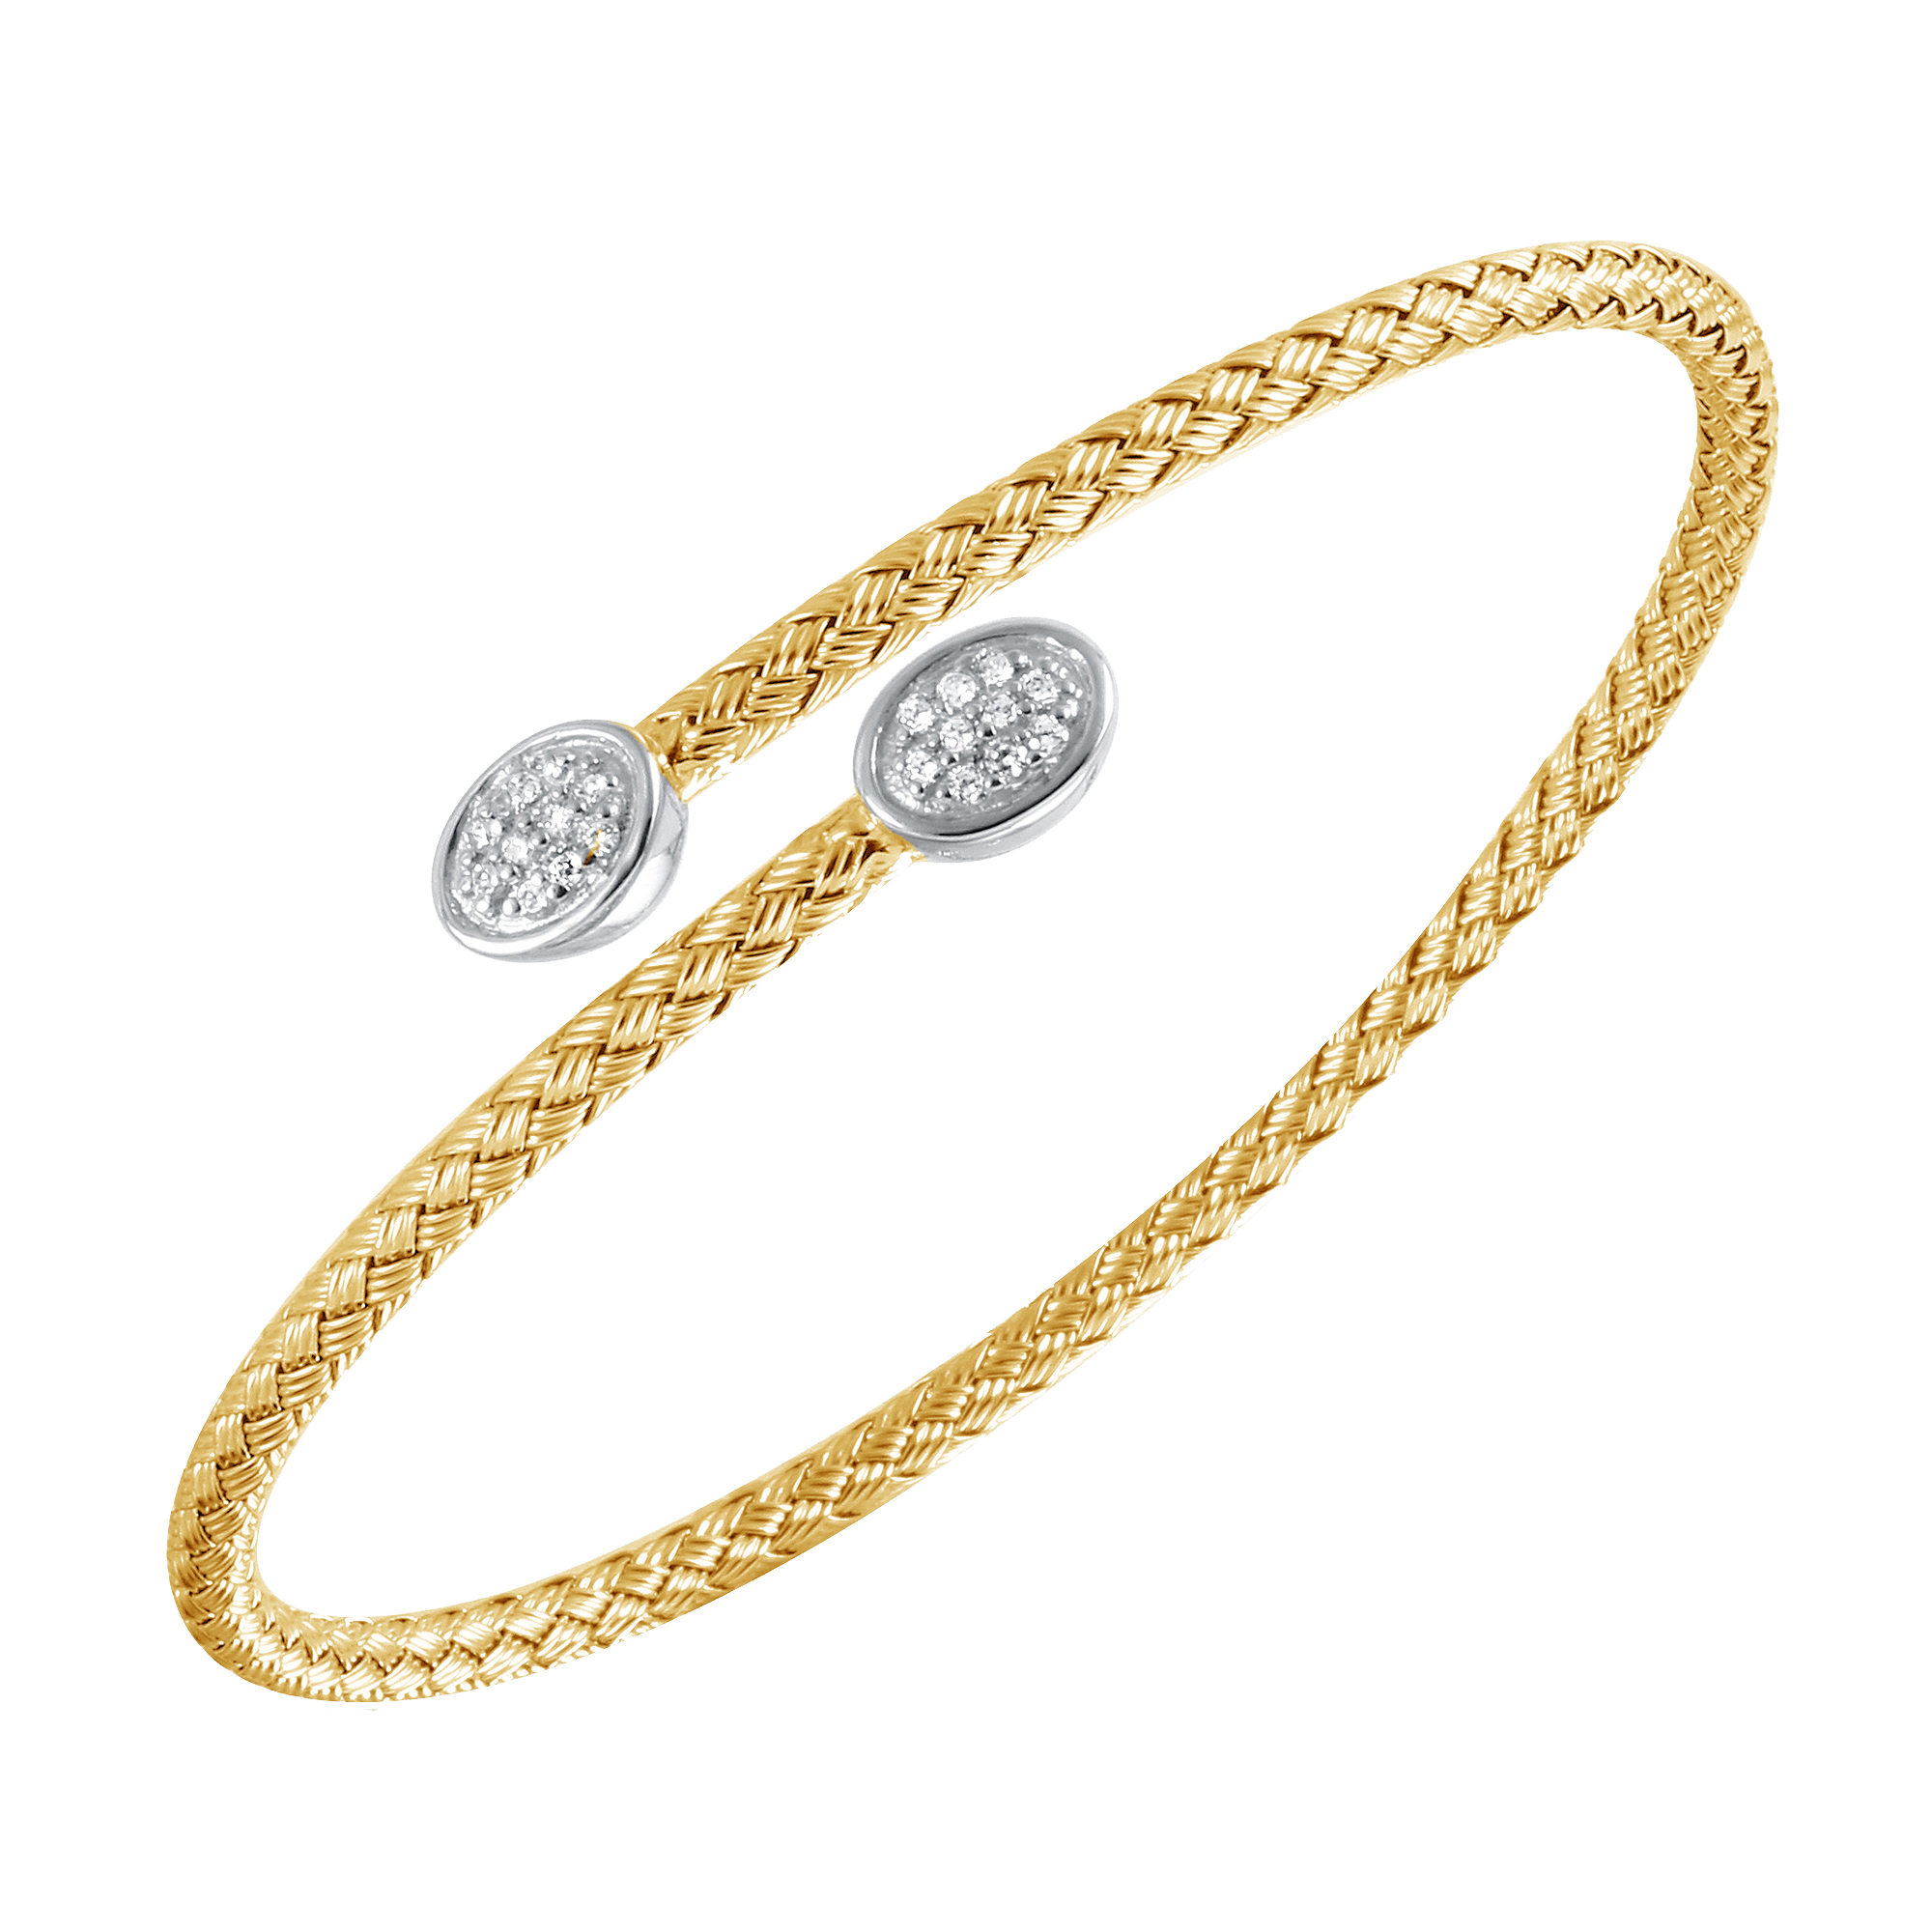 CHARLES GARNIER - Sterling Silver and CZ Oval Cuff Bangle